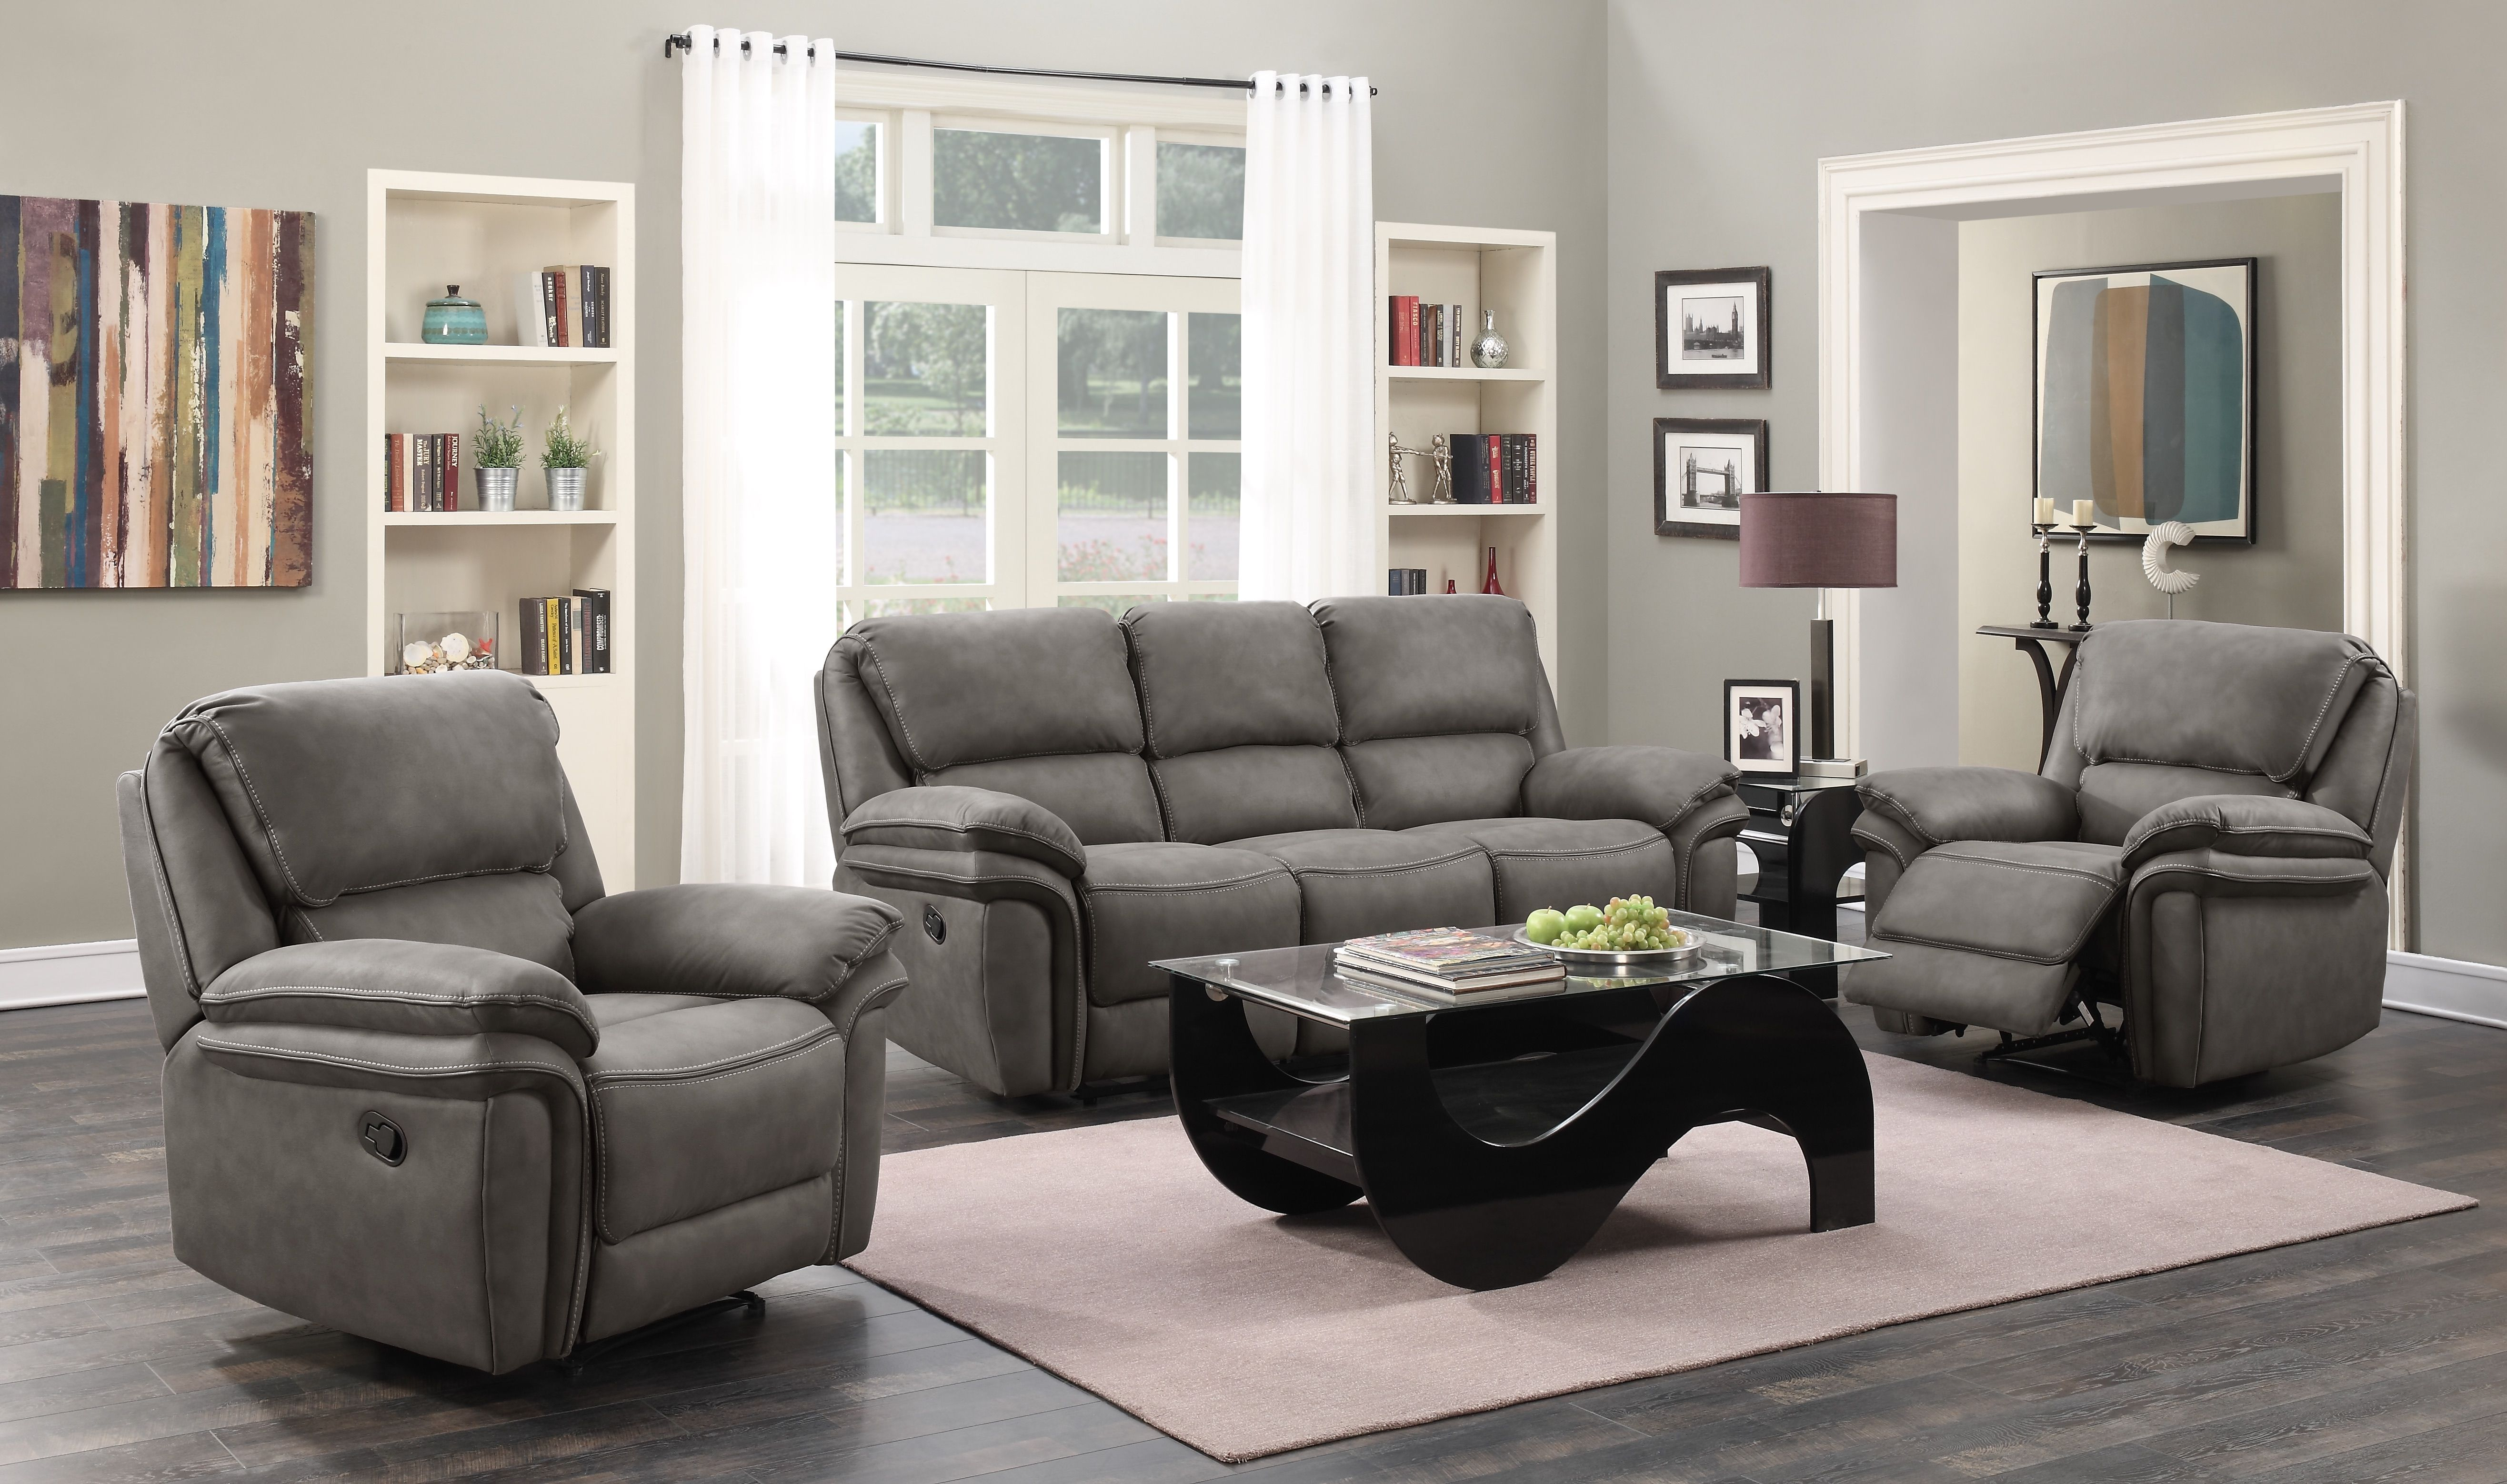 Moy Reclining Living Room Collection Living Room Suite White